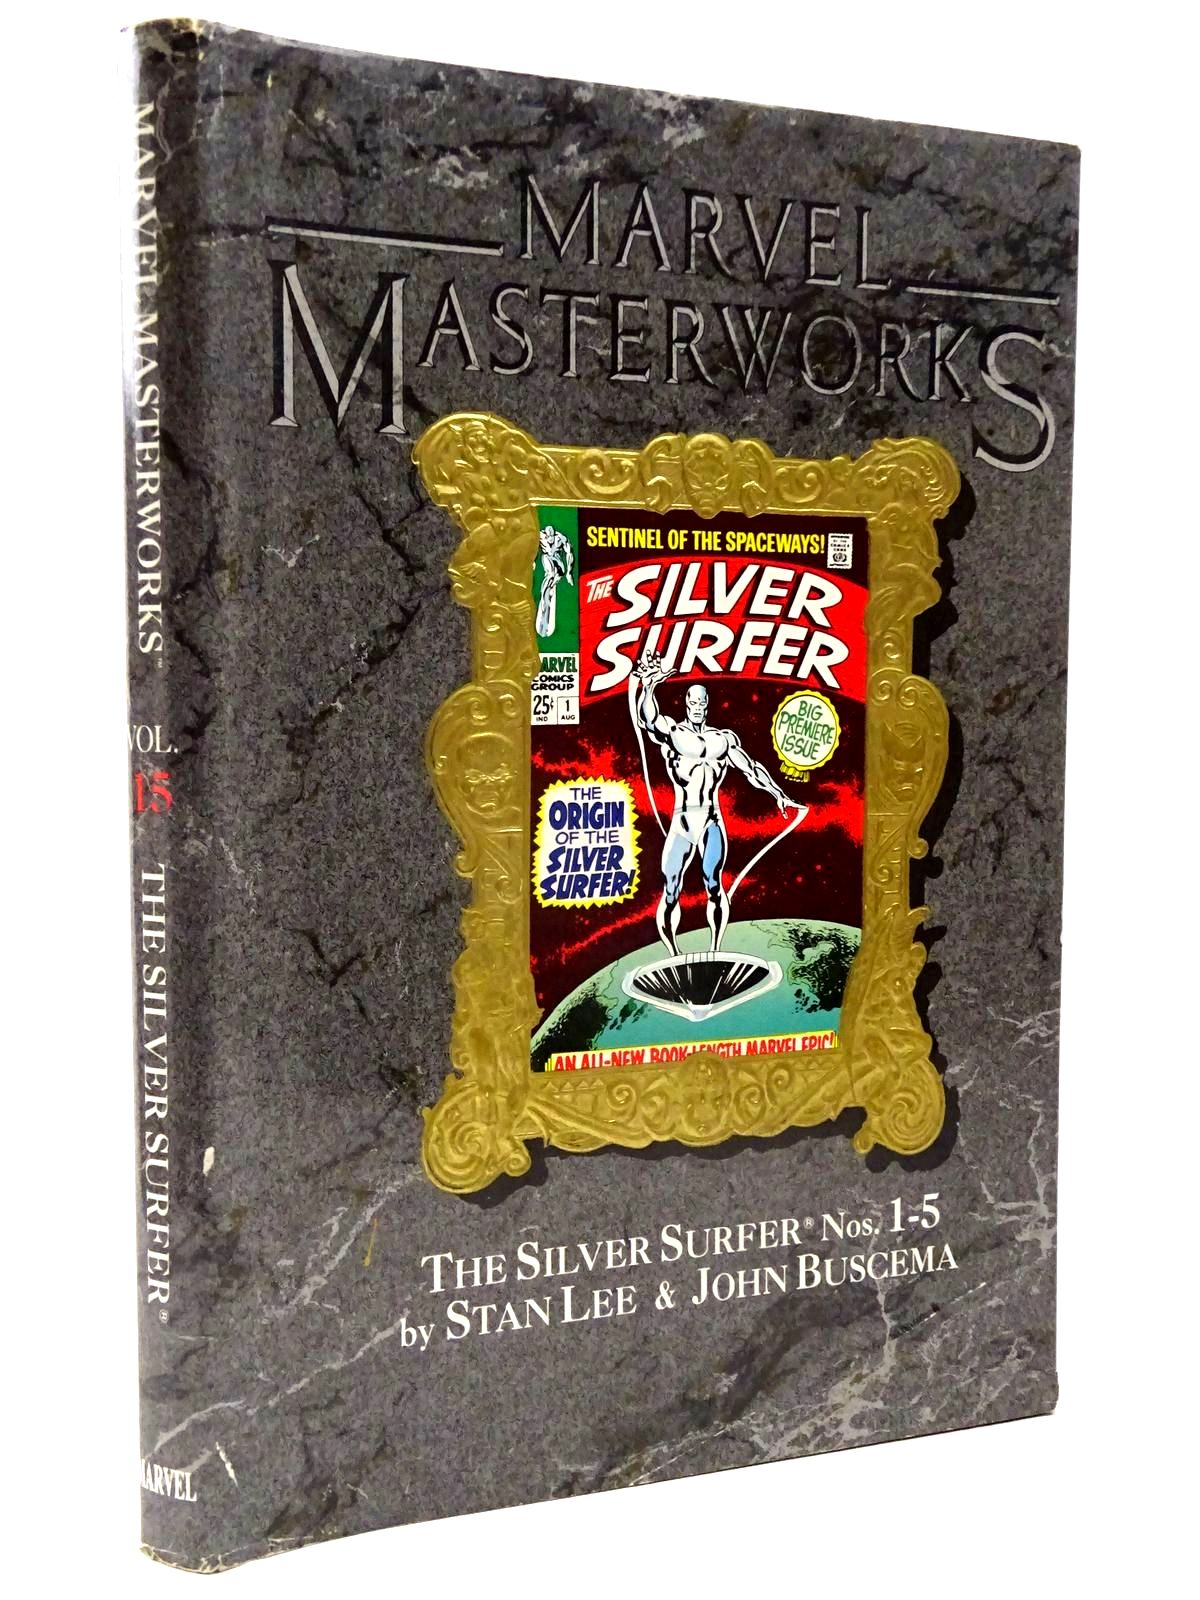 Photo of MARVEL MASTERWORKS VOLUME 15 - THE SILVER SURFER written by Lee, Stan<br />Buscema, John published by Marvel Comics Limited (STOCK CODE: 2130316)  for sale by Stella & Rose's Books